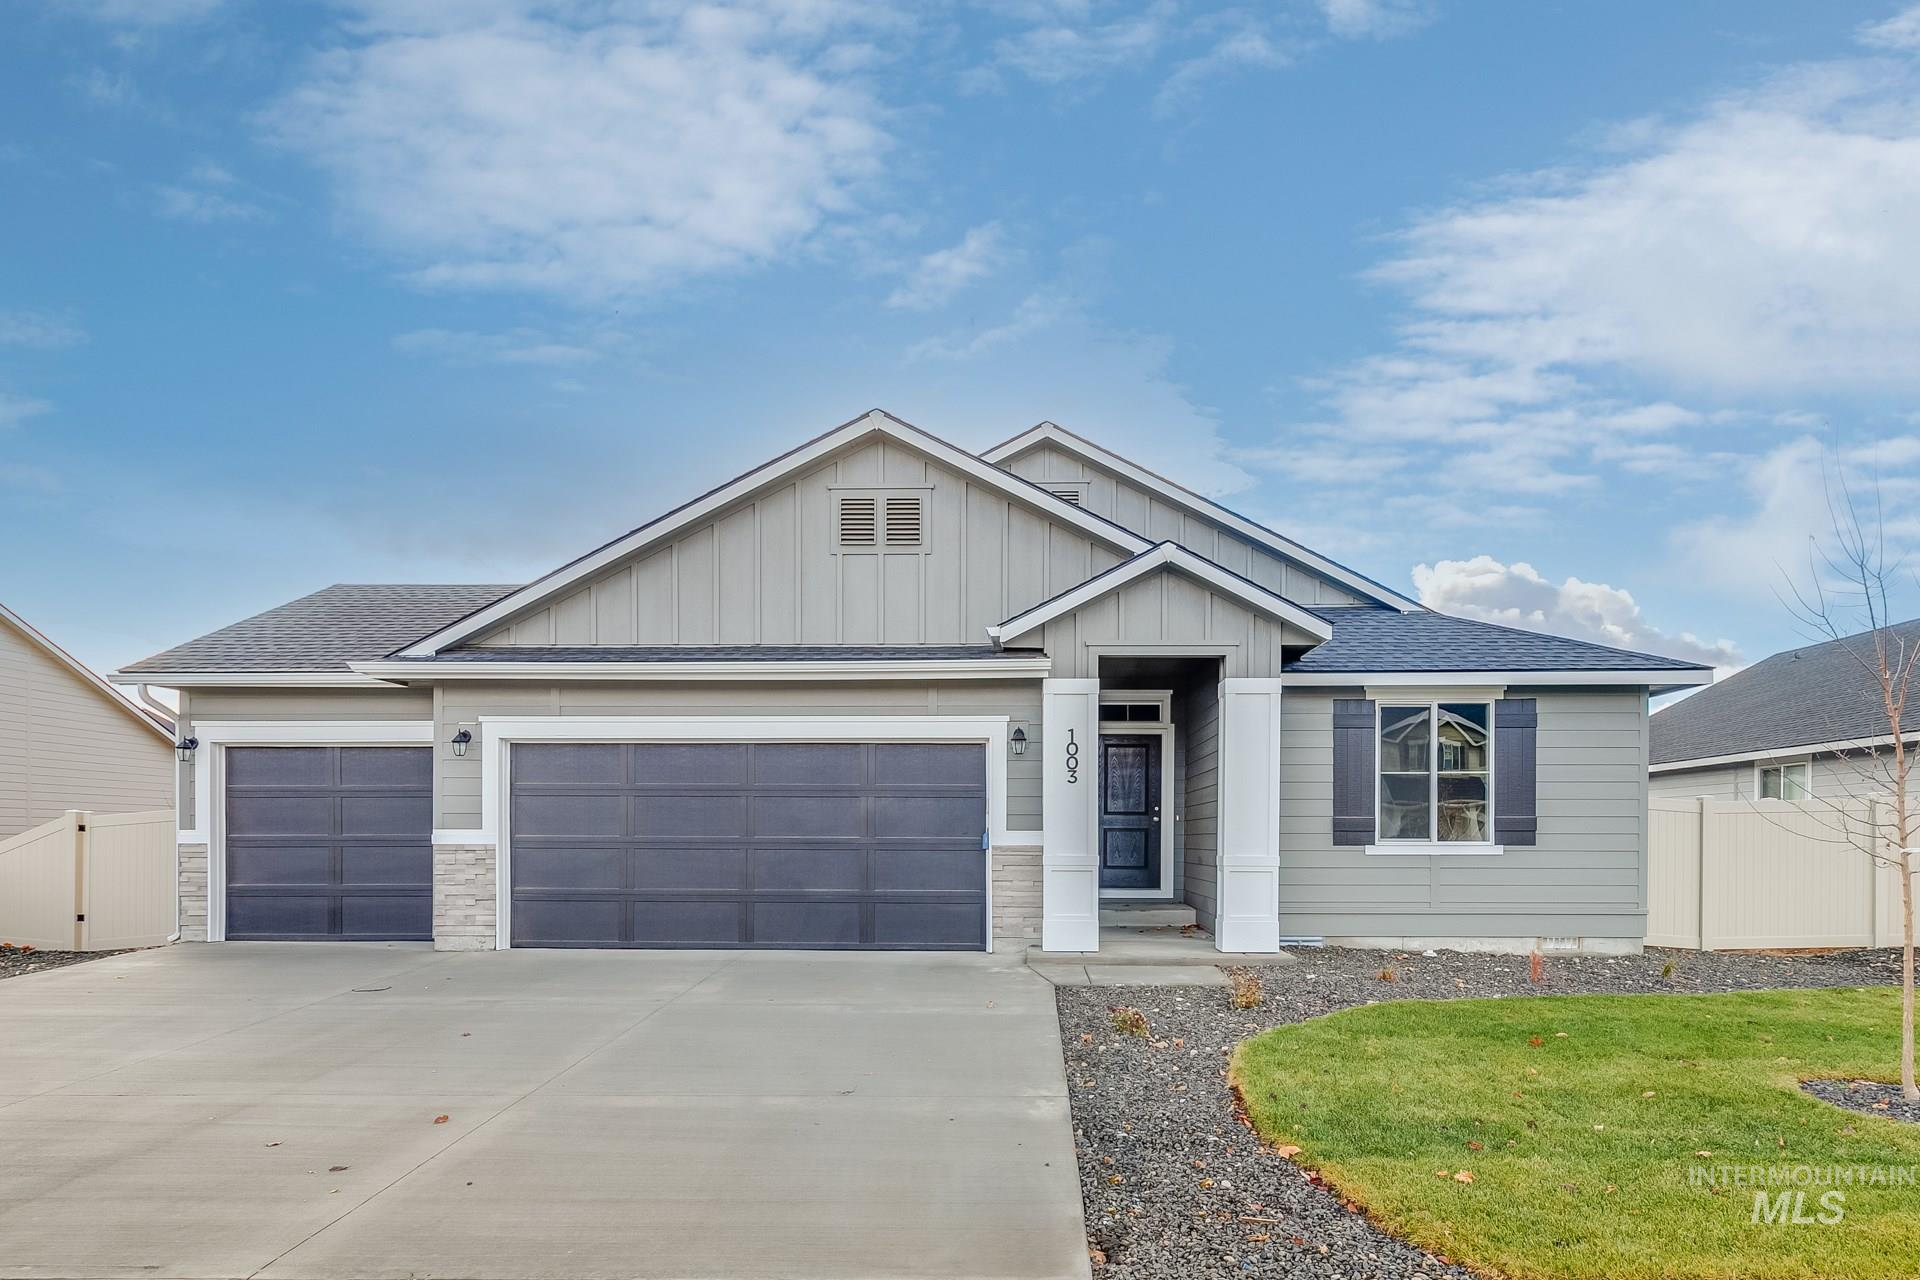 13212 S Coquille River Ave. Property Photo - Nampa, ID real estate listing